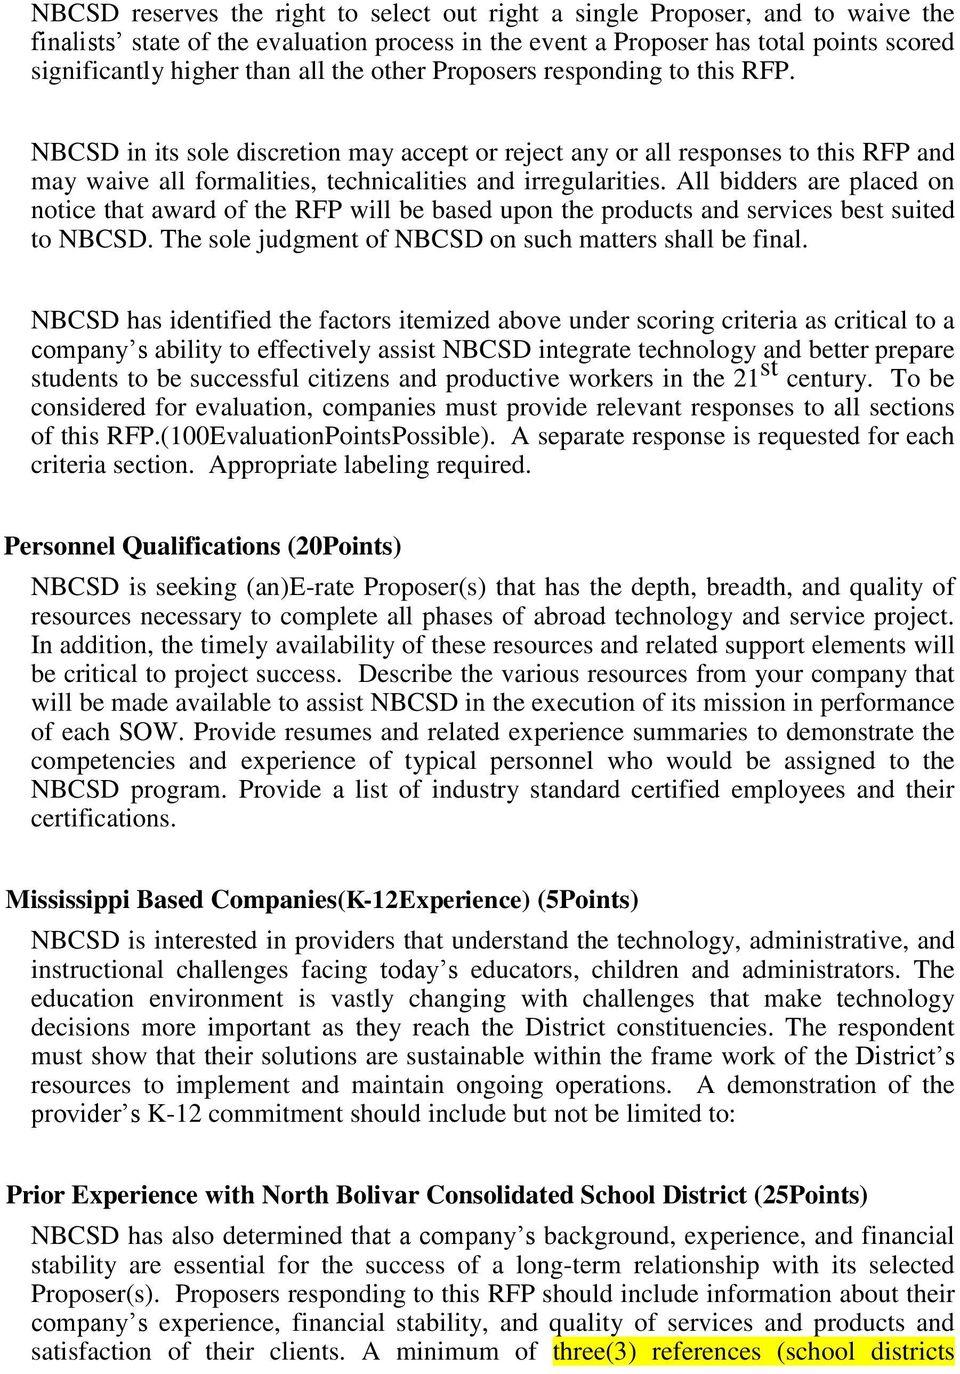 All bidders are placed on notice that award of the RFP will be based upon the products and services best suited to NBCSD. The sole judgment of NBCSD on such matters shall be final.